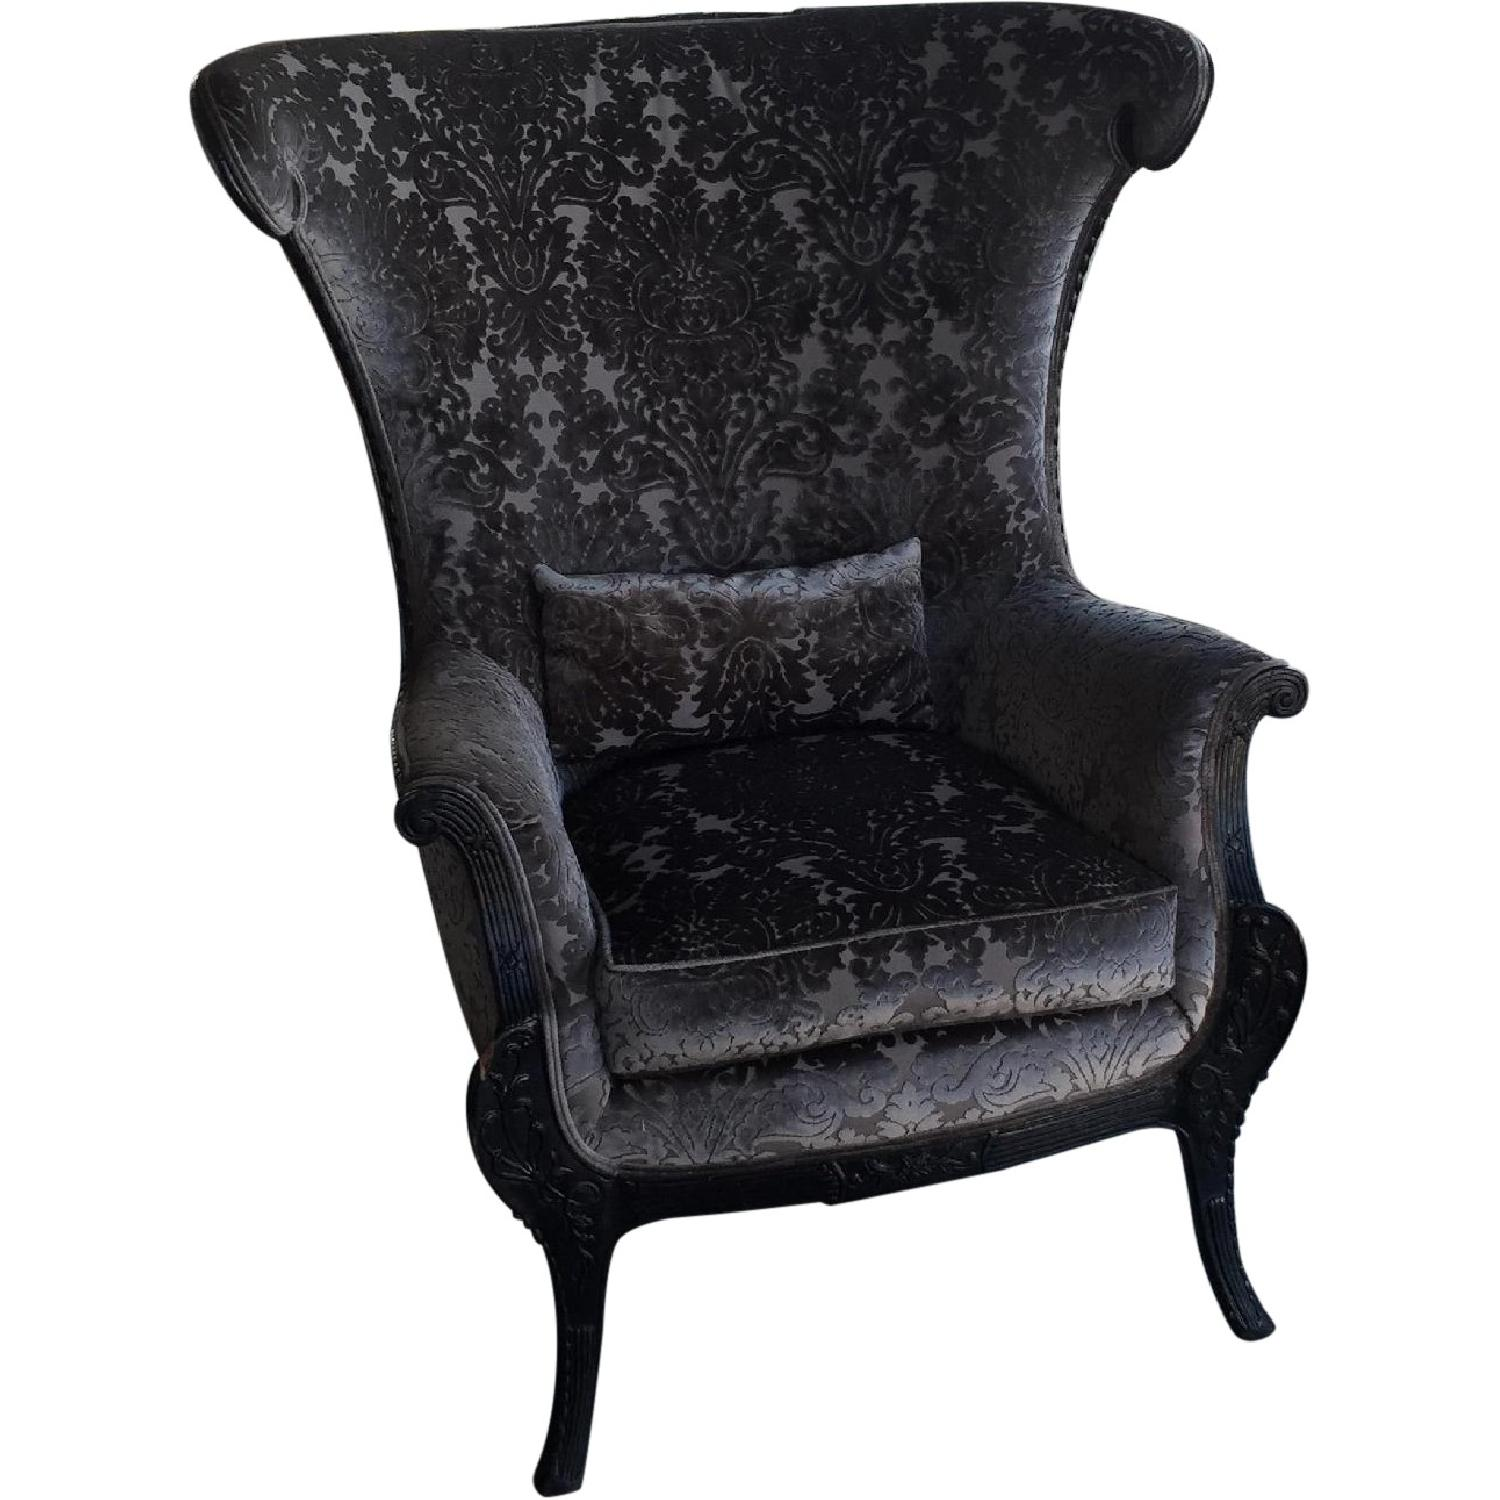 Antique High-Backed Reupholstered Gray Fabric Armchair - image-0